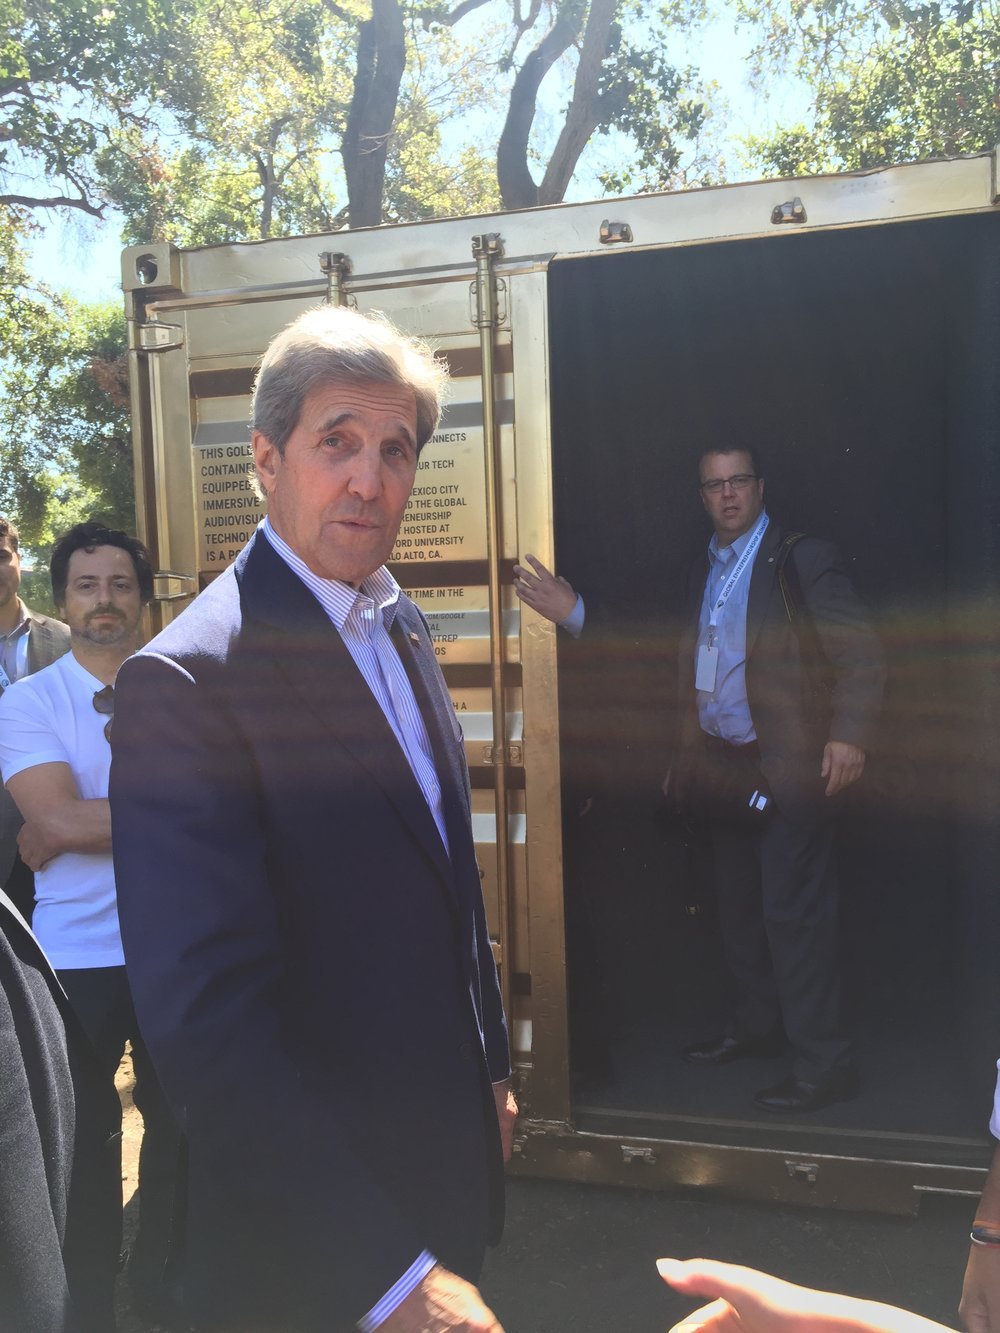 U.S. Secretary of State John Kerry and Google co-founder Sergey Brin outside the Portal at Stanford University